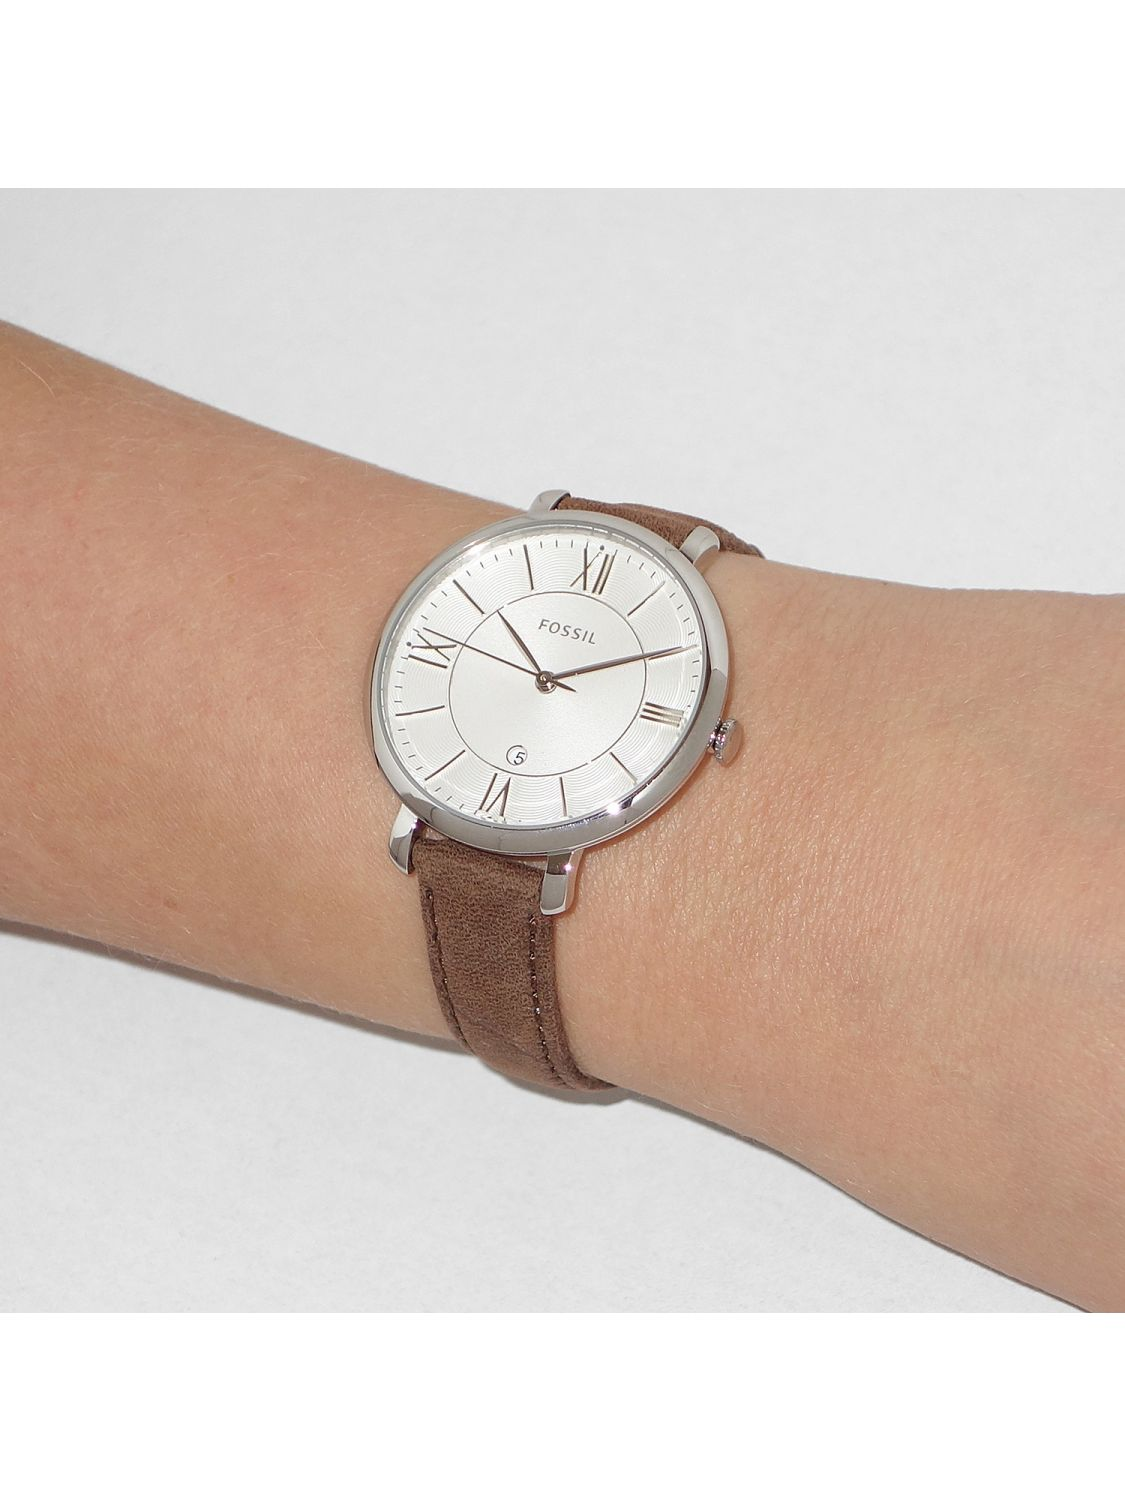 jacqueline img plus watches blog review white and gold fossil rose under watch